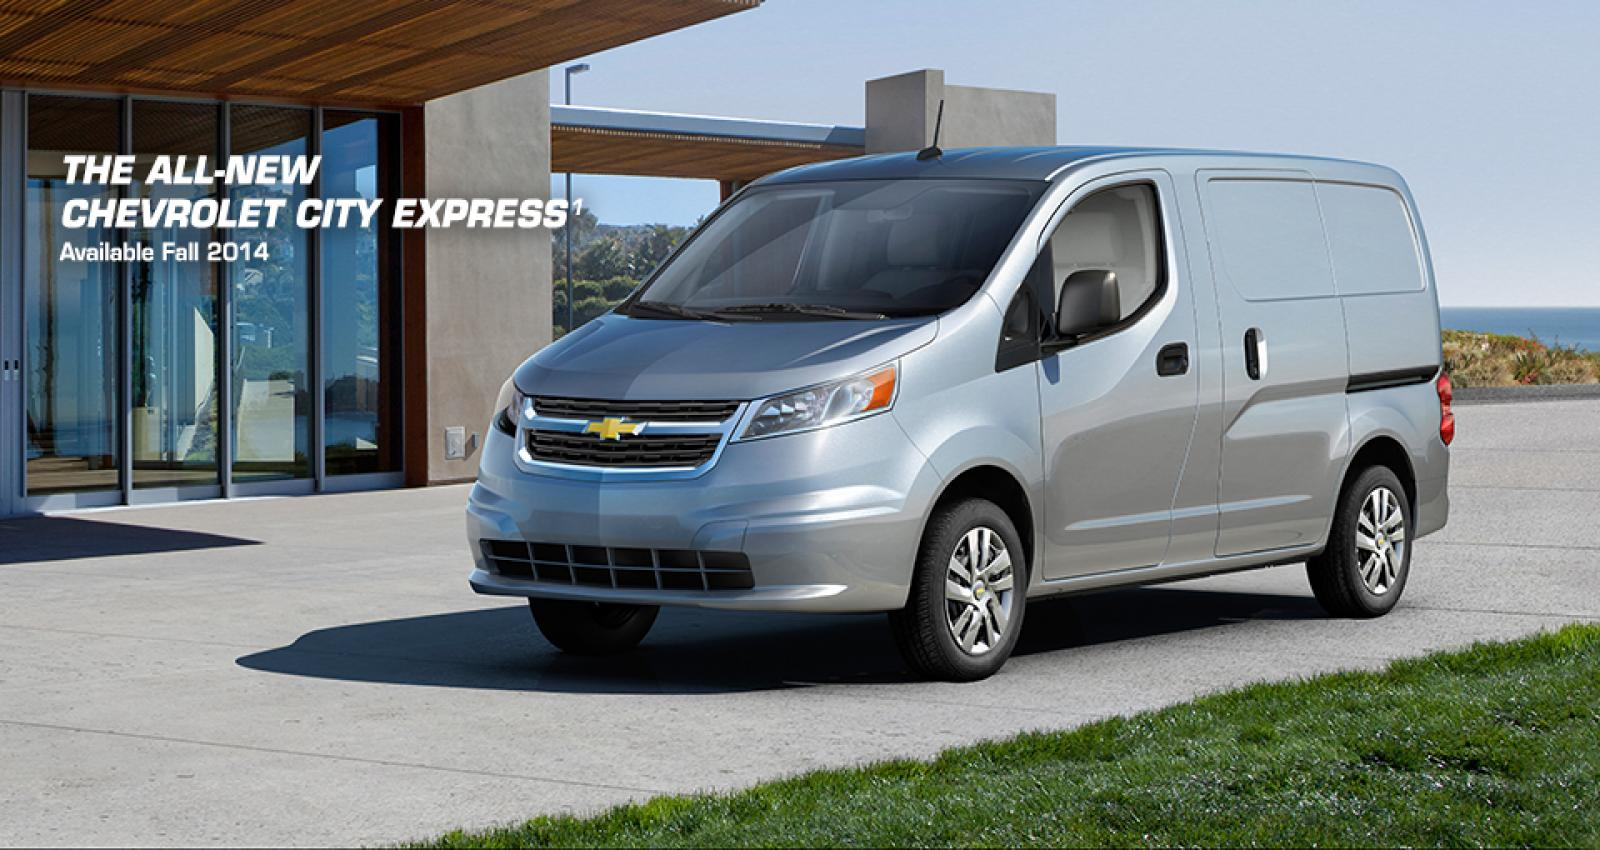 2015 chevrolet express cargo information and photos zombiedrive. Black Bedroom Furniture Sets. Home Design Ideas